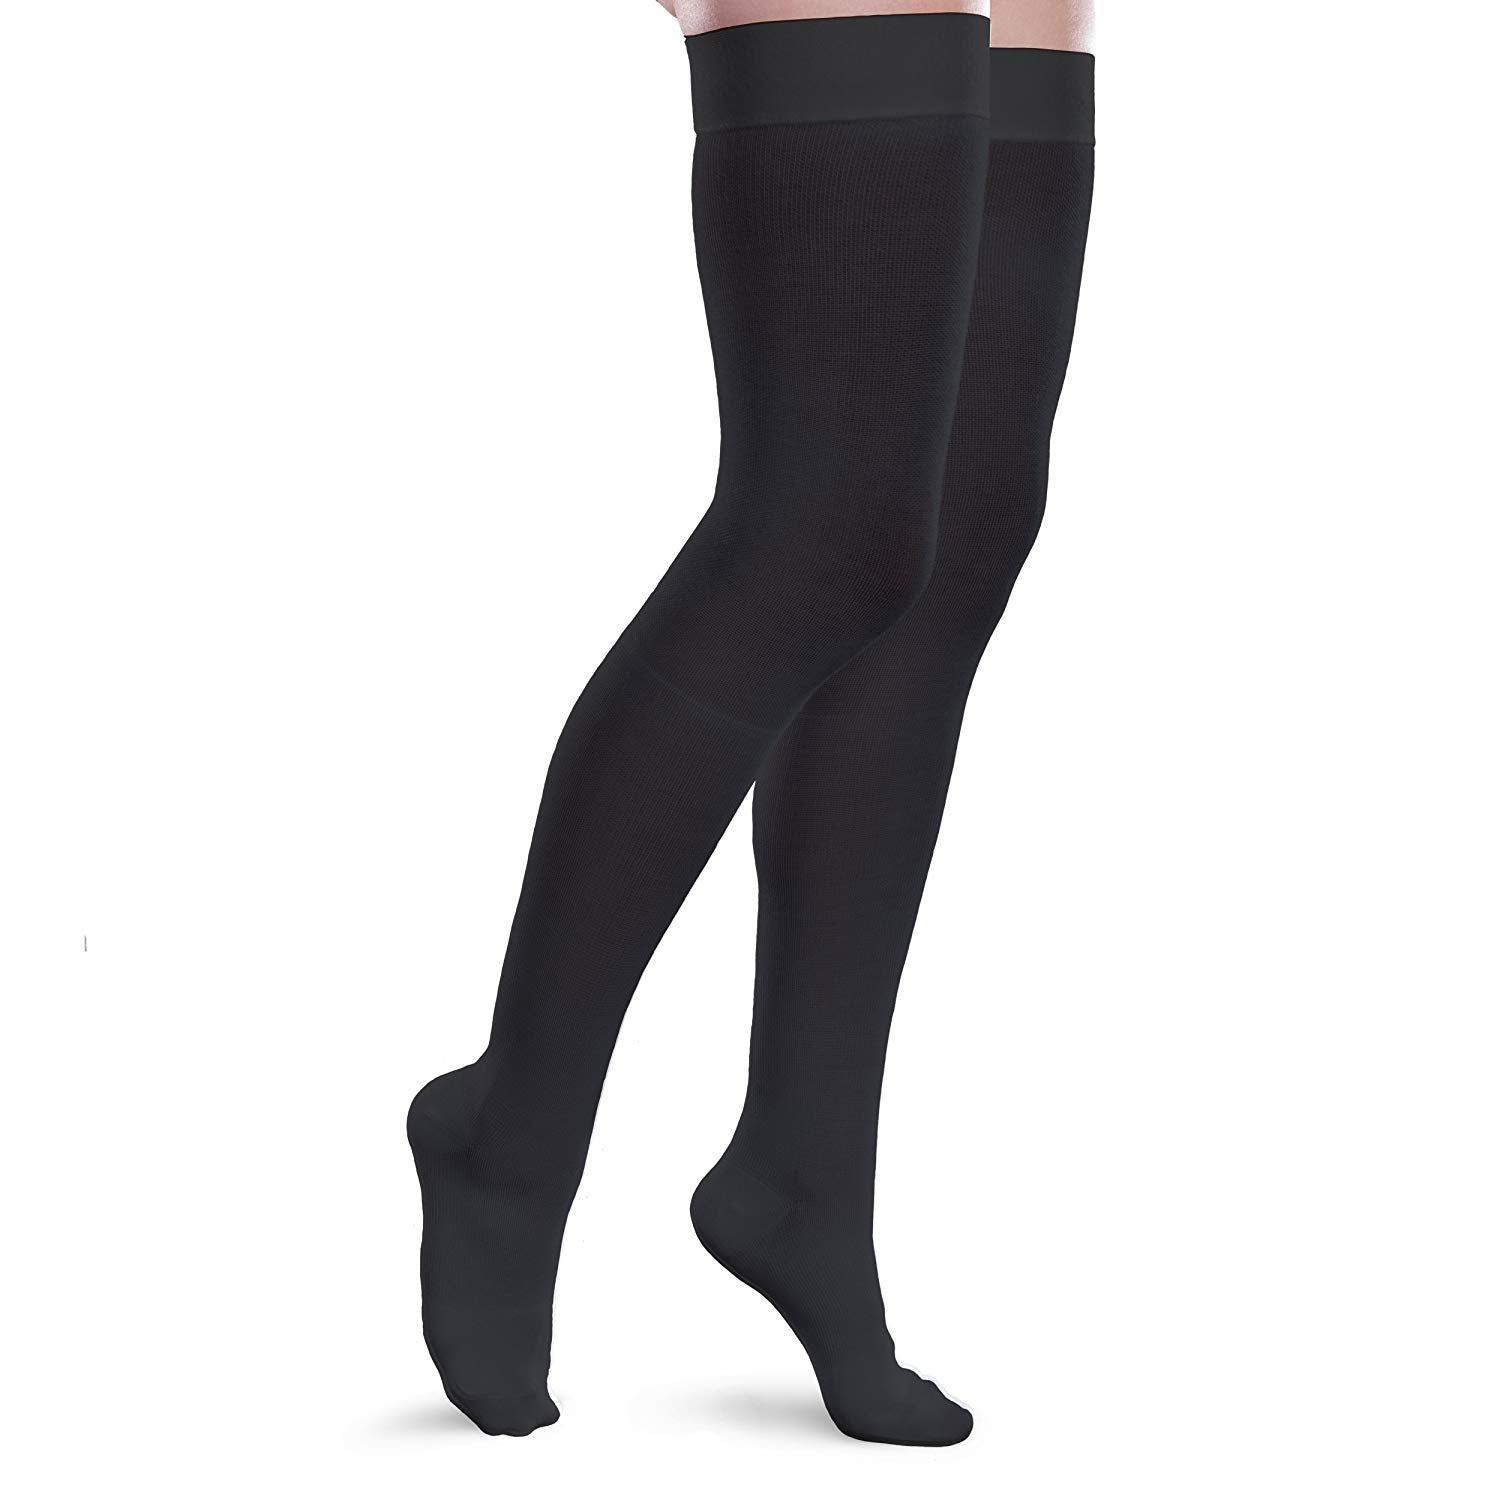 Core-Spun 20-30mmHg Moderate Compression Thigh High Socks Black 3XL LONG